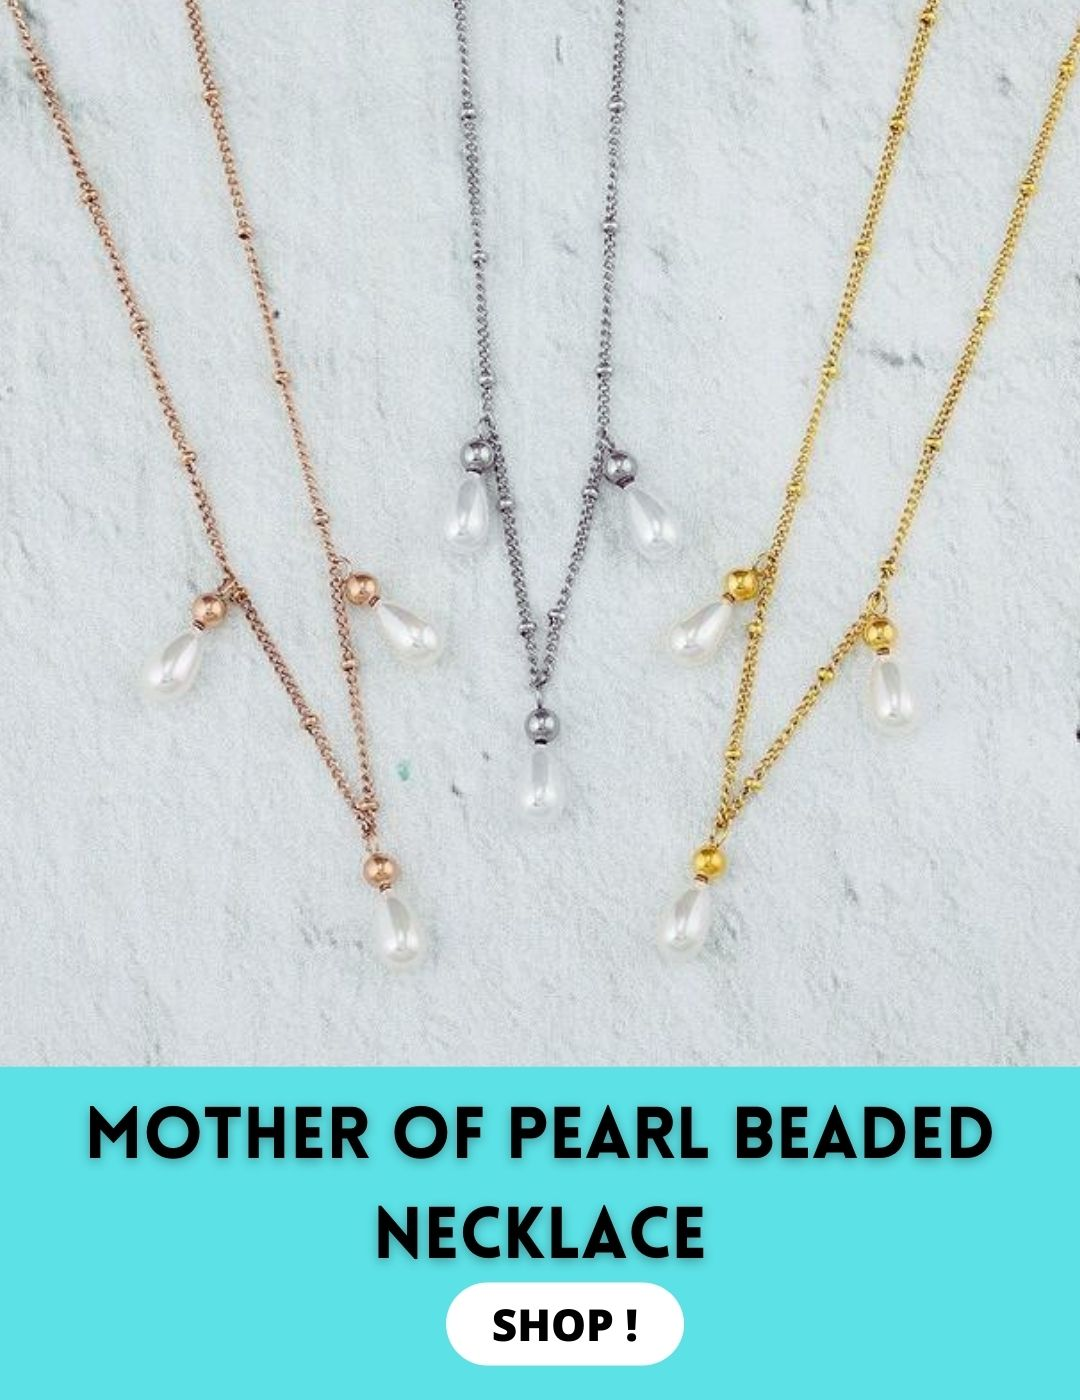 Meaning of pearls